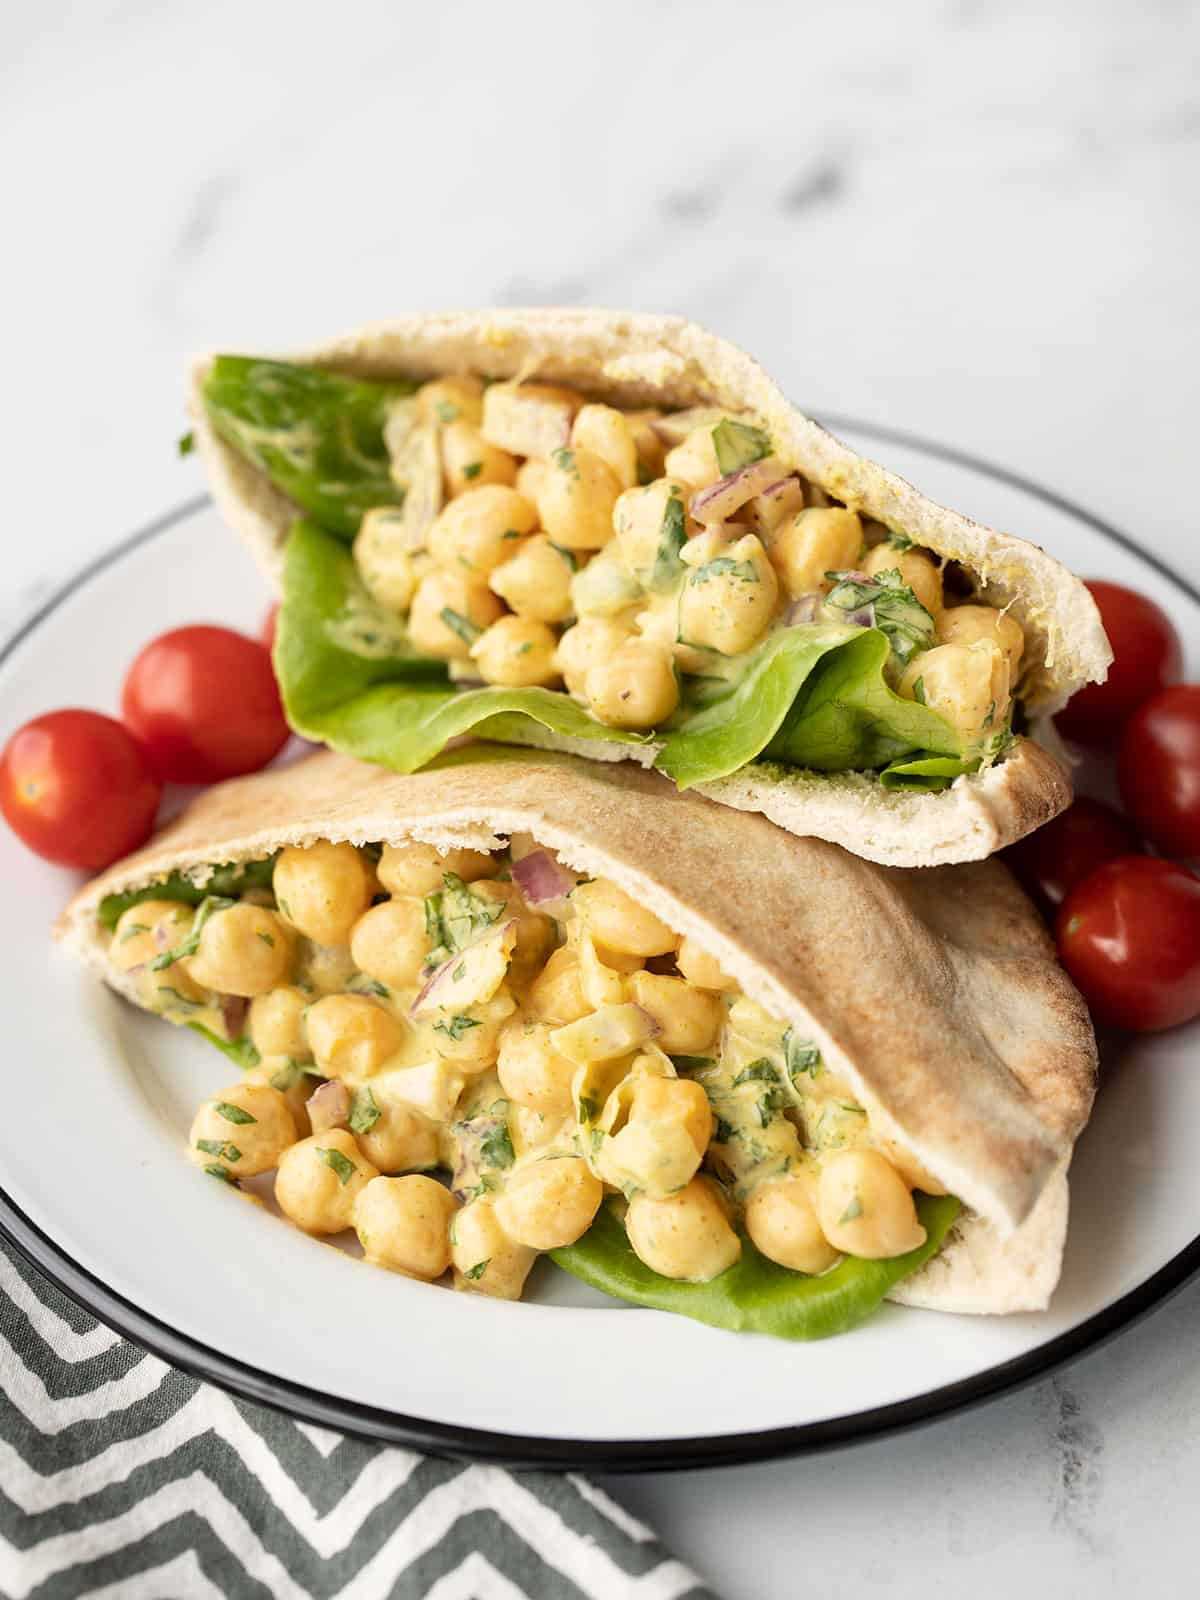 Curry Chickpea Salad stuffed into a pita on a plate with grape tomatoes